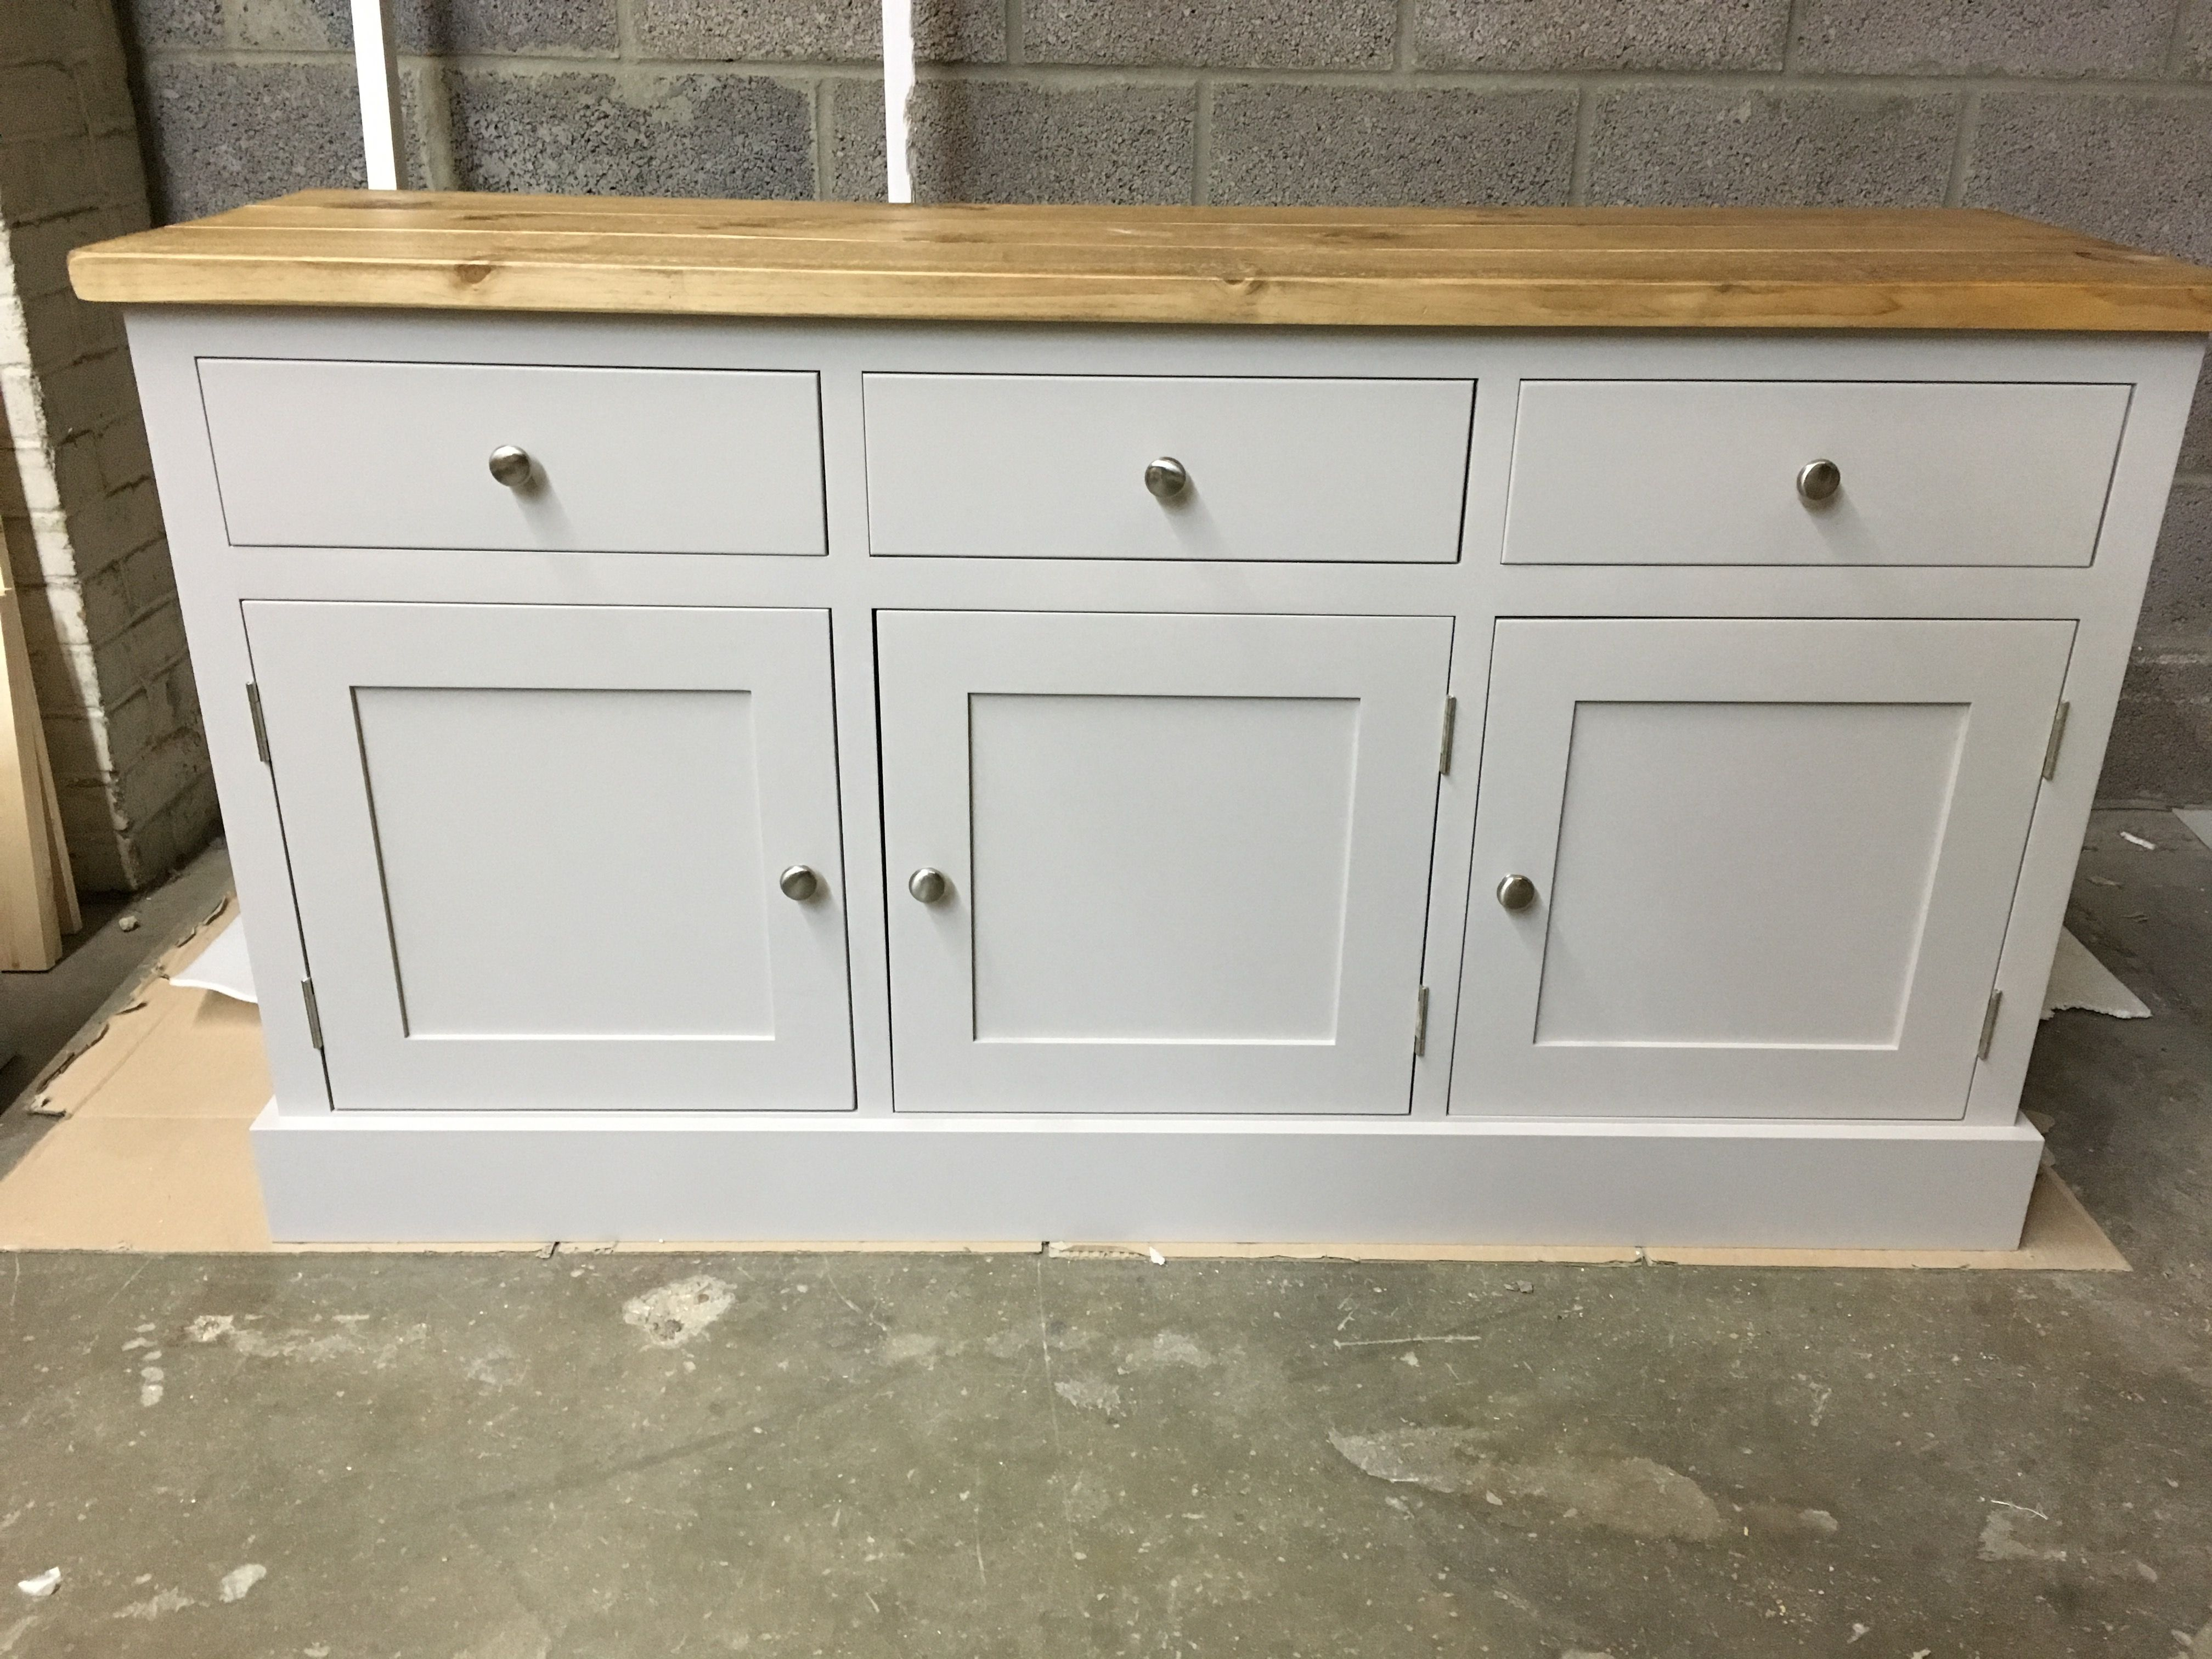 5 Sideboard Painted In F B New White With A Pine Top Can Be Made Any Size Or Painted Any Colour Cobwebs Furniture C White Sideboard Pine Furniture Furniture